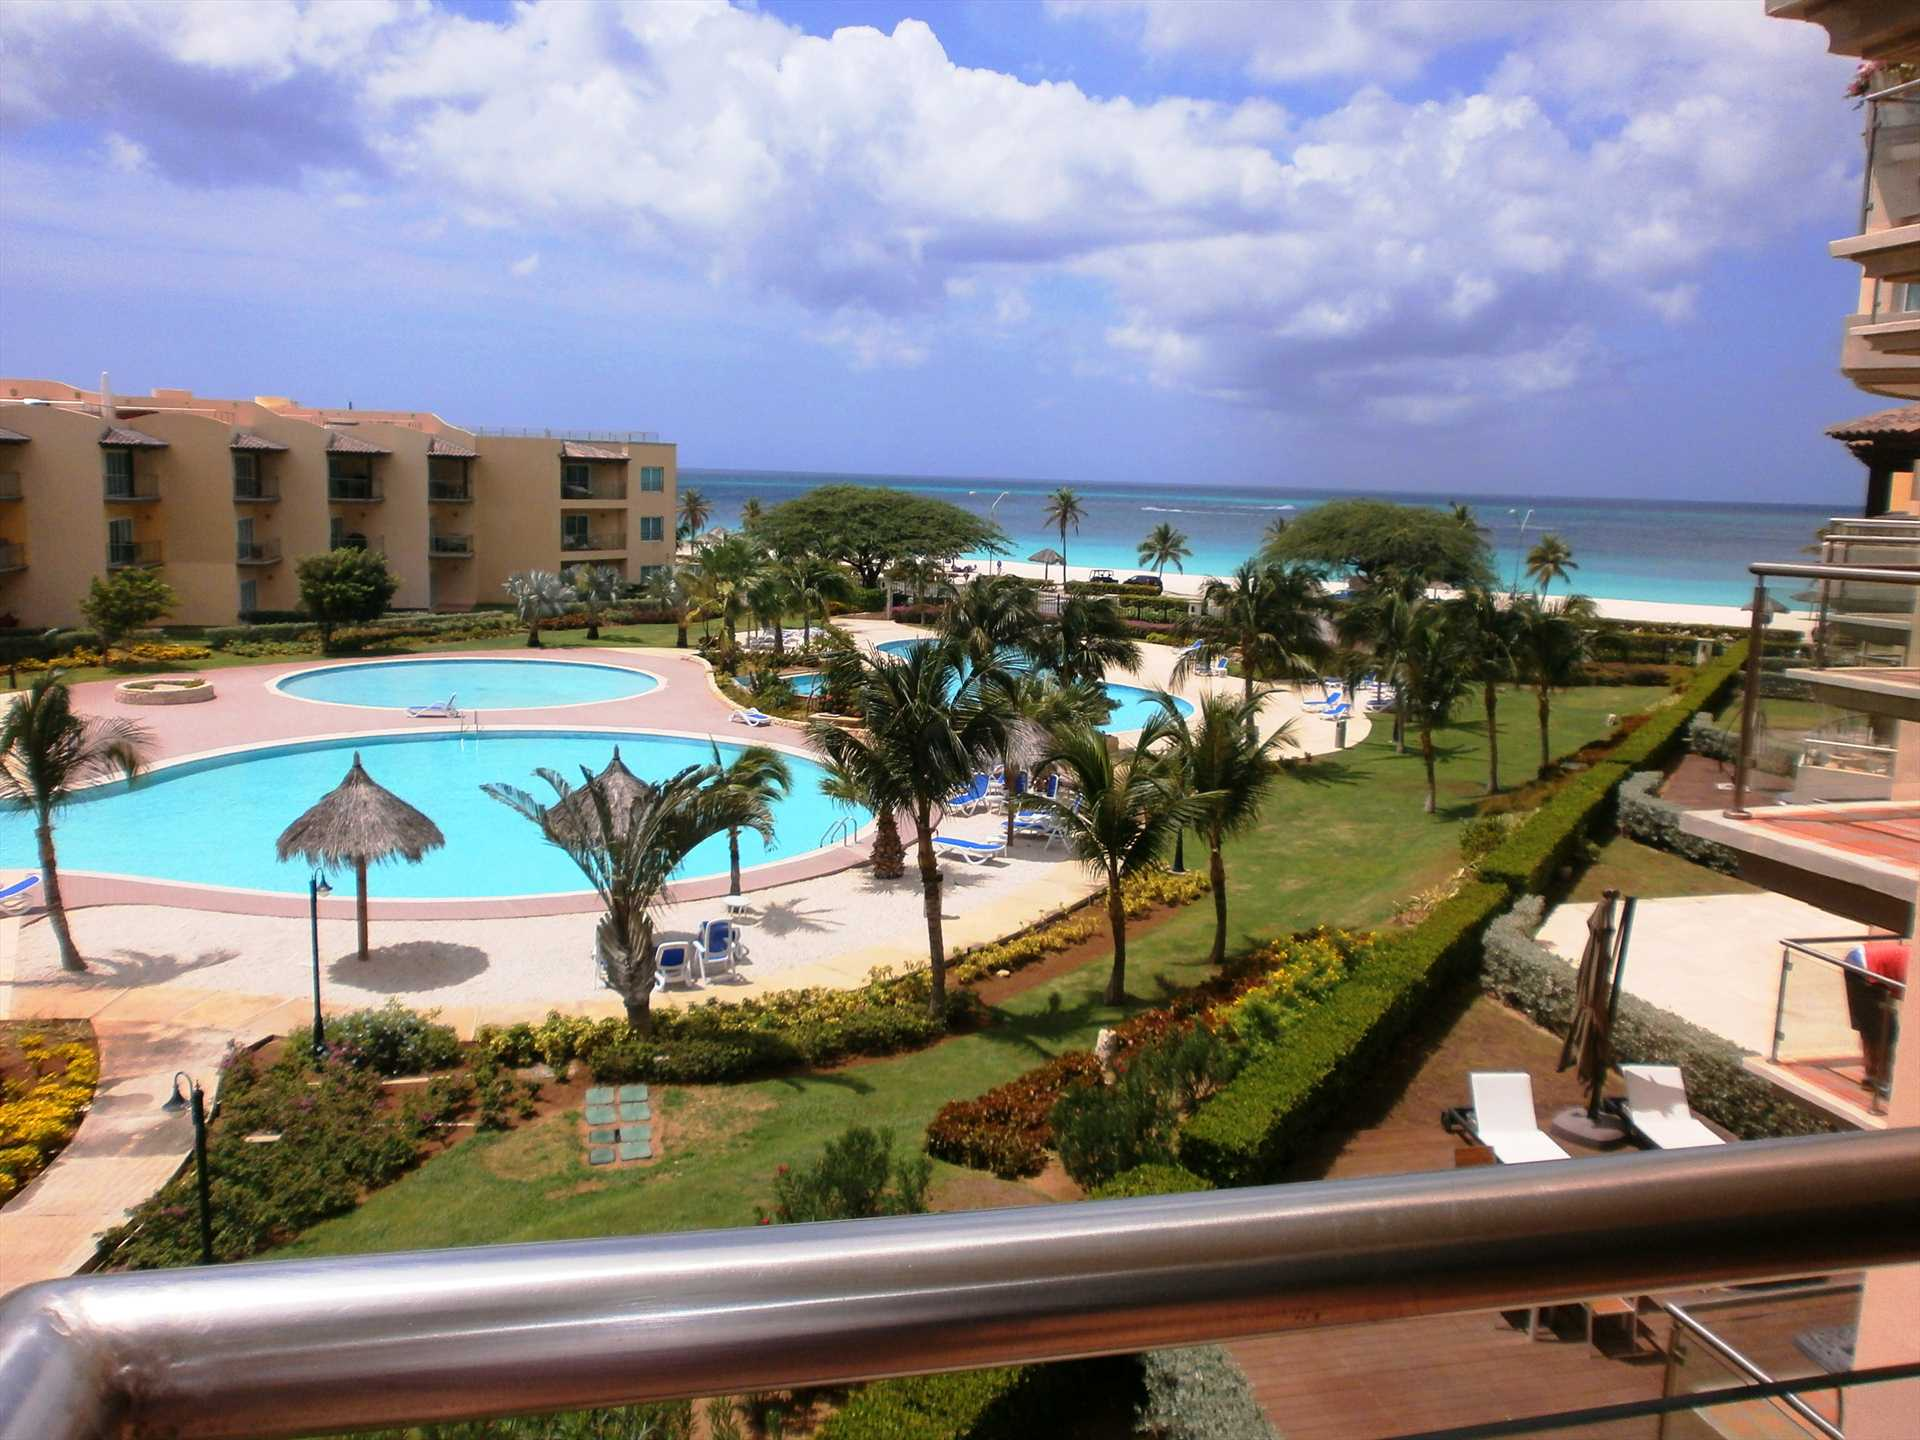 Your amazing view from the master bedroom balcony